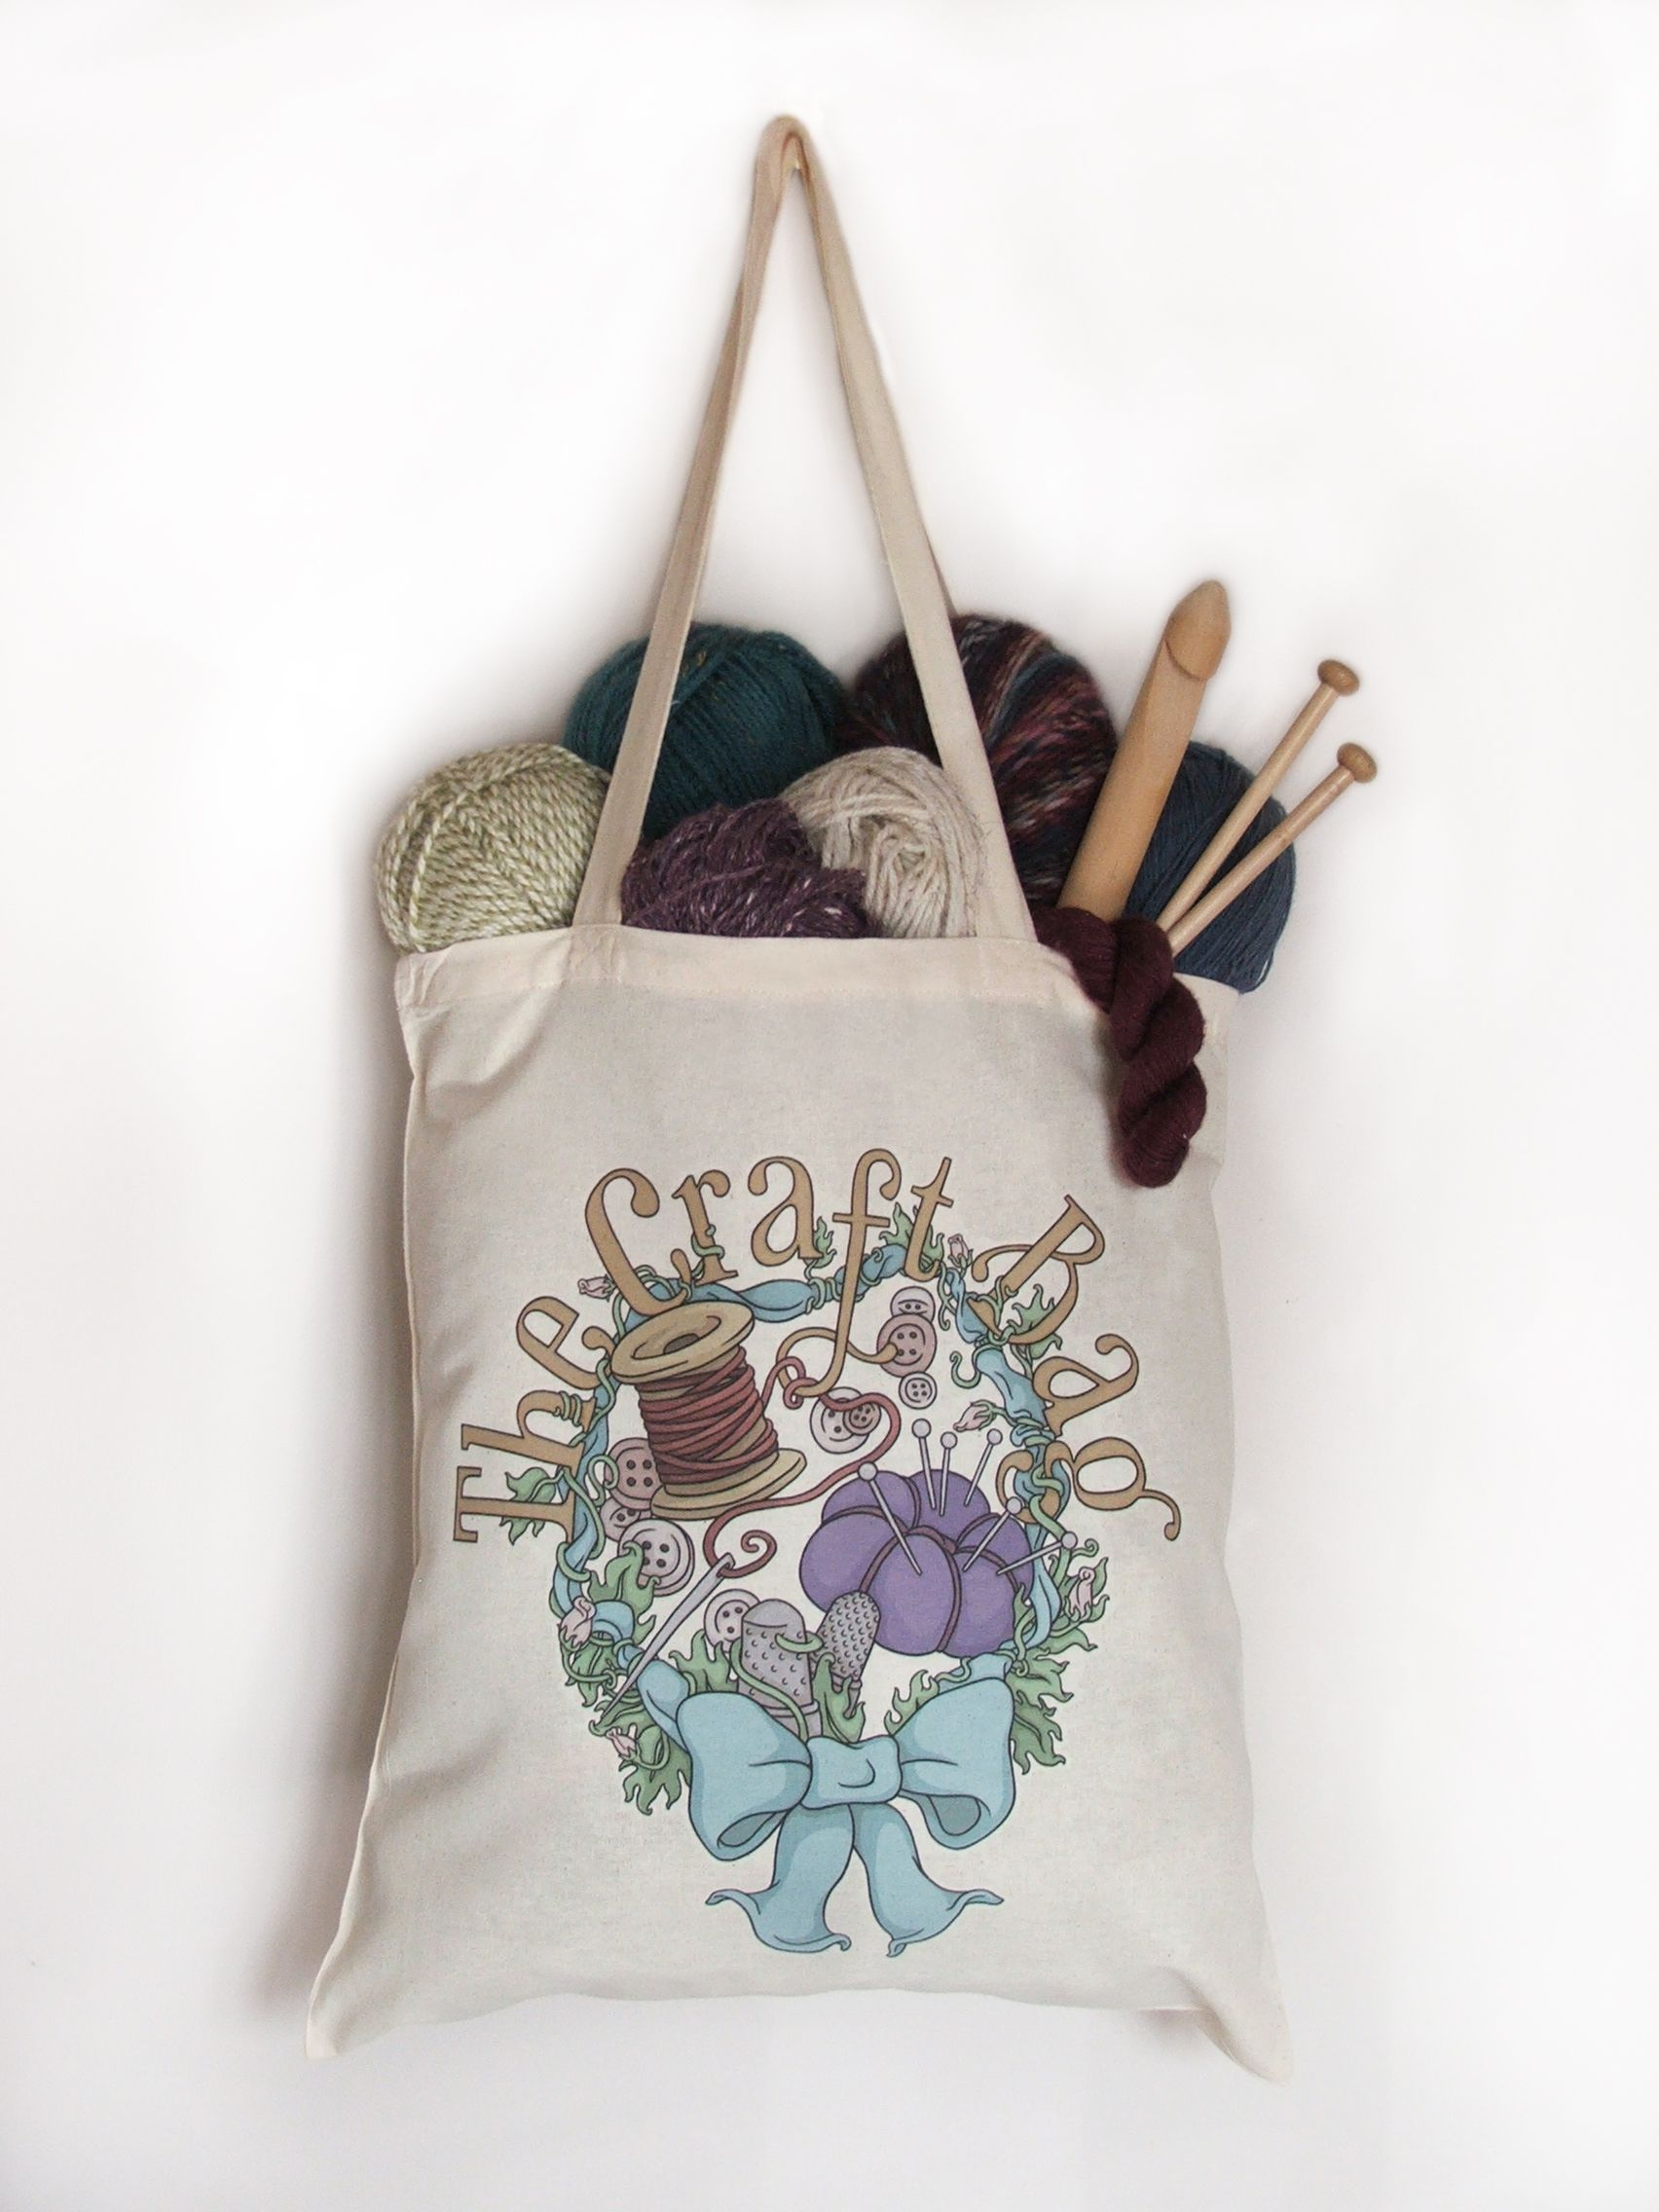 On Sale now! The Craft bag, 100% cotton tote with vinyl transfer. Perfect for keeping order to your stash or for carrying your bits and pieces to a craft club.  Available on Etsy, visit my store on the link below: https://www.etsy.com/uk/shop/TeaForMeDesigns  #knitting #knit #craft #art #project #crochet #quilt #quilting #sewing #illustration #digitalillustration